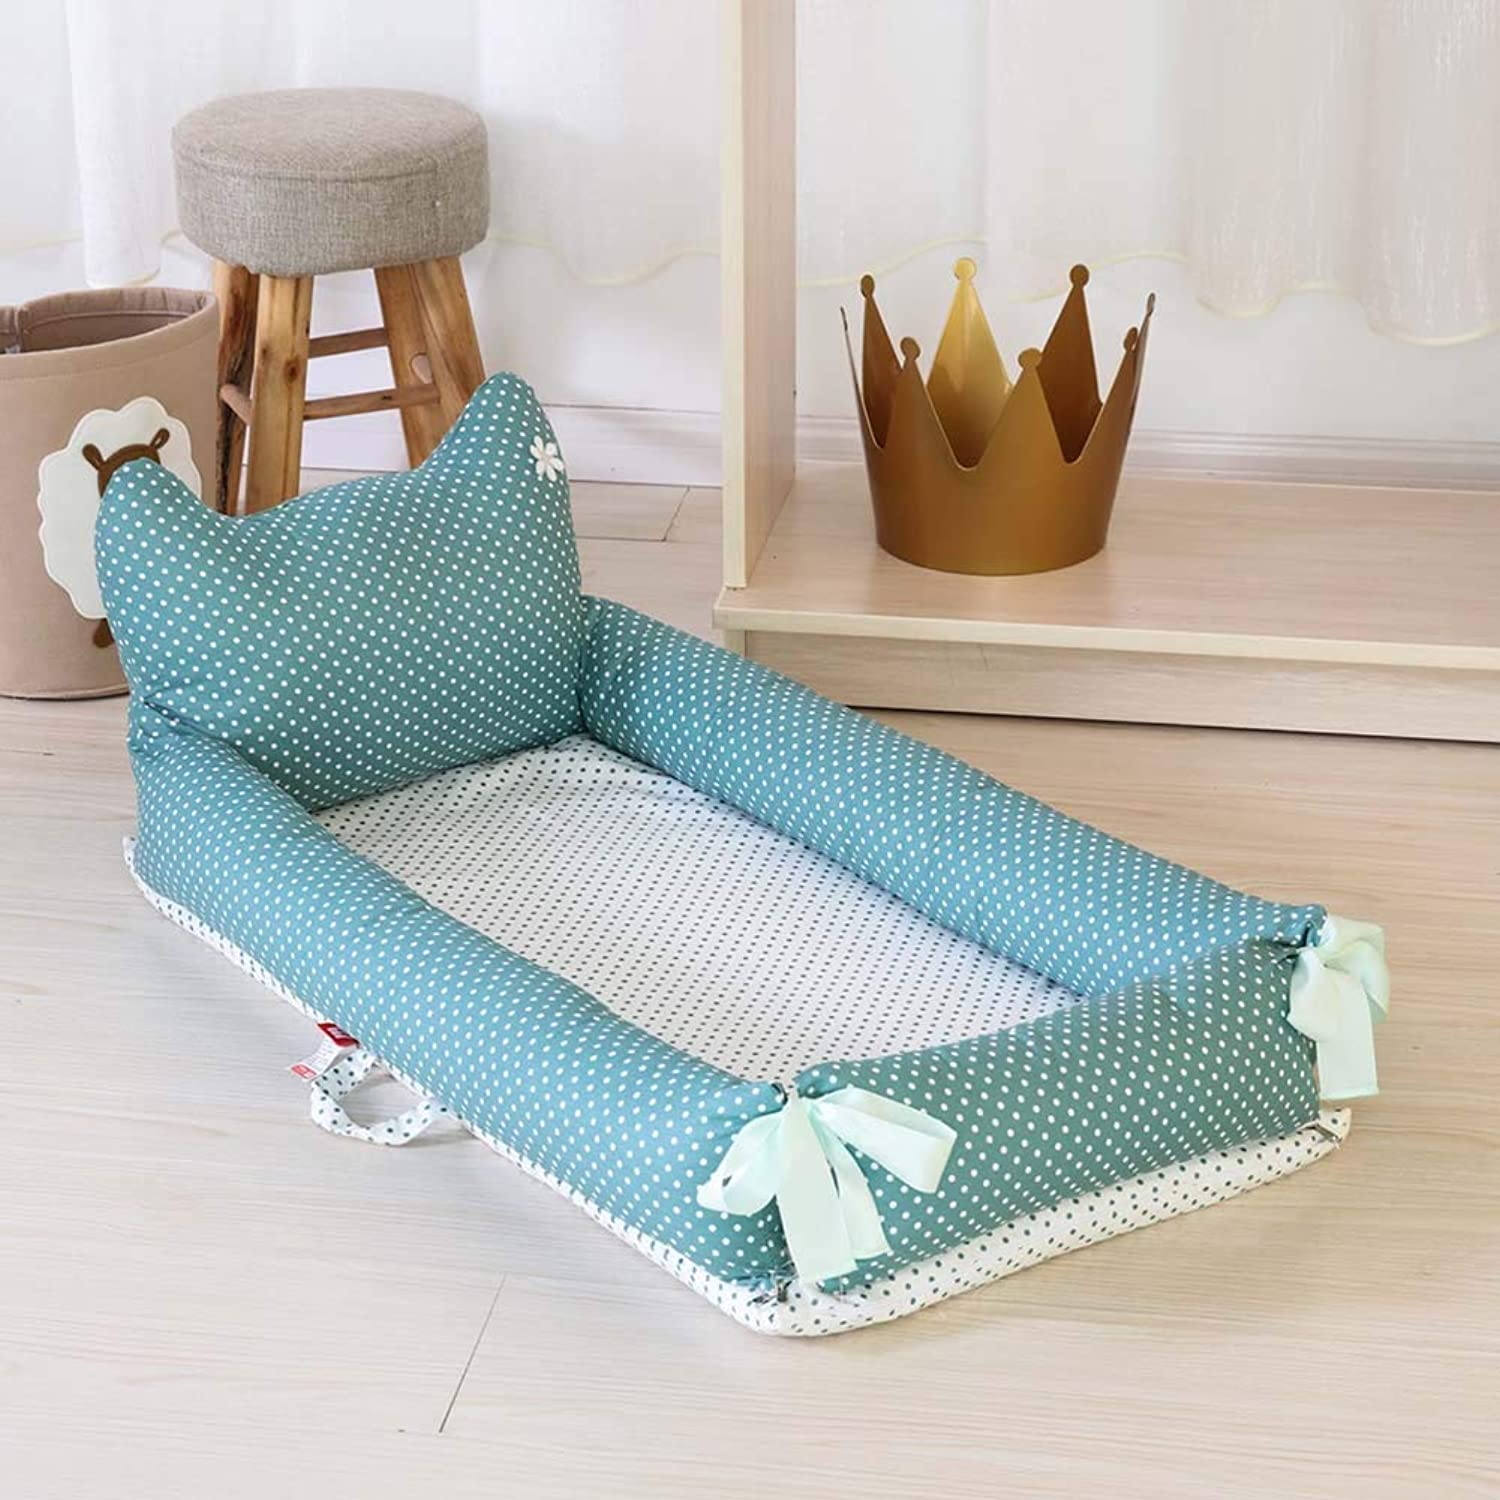 Newborn Portable Multi-Function Uterine Bed in Bed Fully Detachable Back-Bed Cot for 0-2 Years Old,D,Smallbed+Pillow